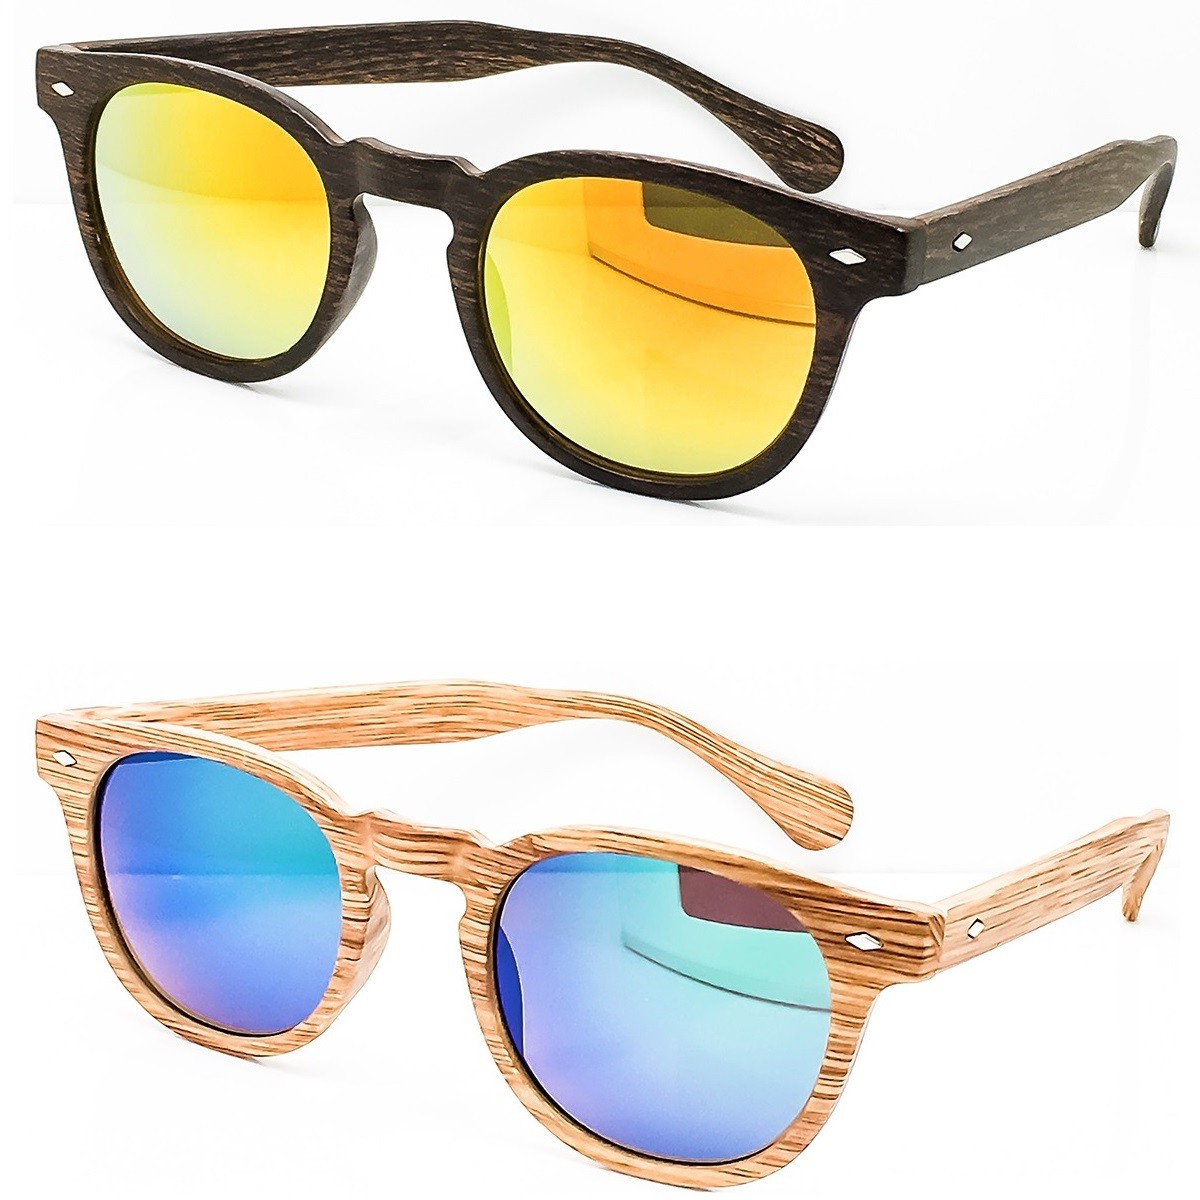 Sunglasses KISS® Line WOOD - style MOSCOT mod. DEPP Mirrored - VINTAGE Johnny Depp man woman CULT unisex